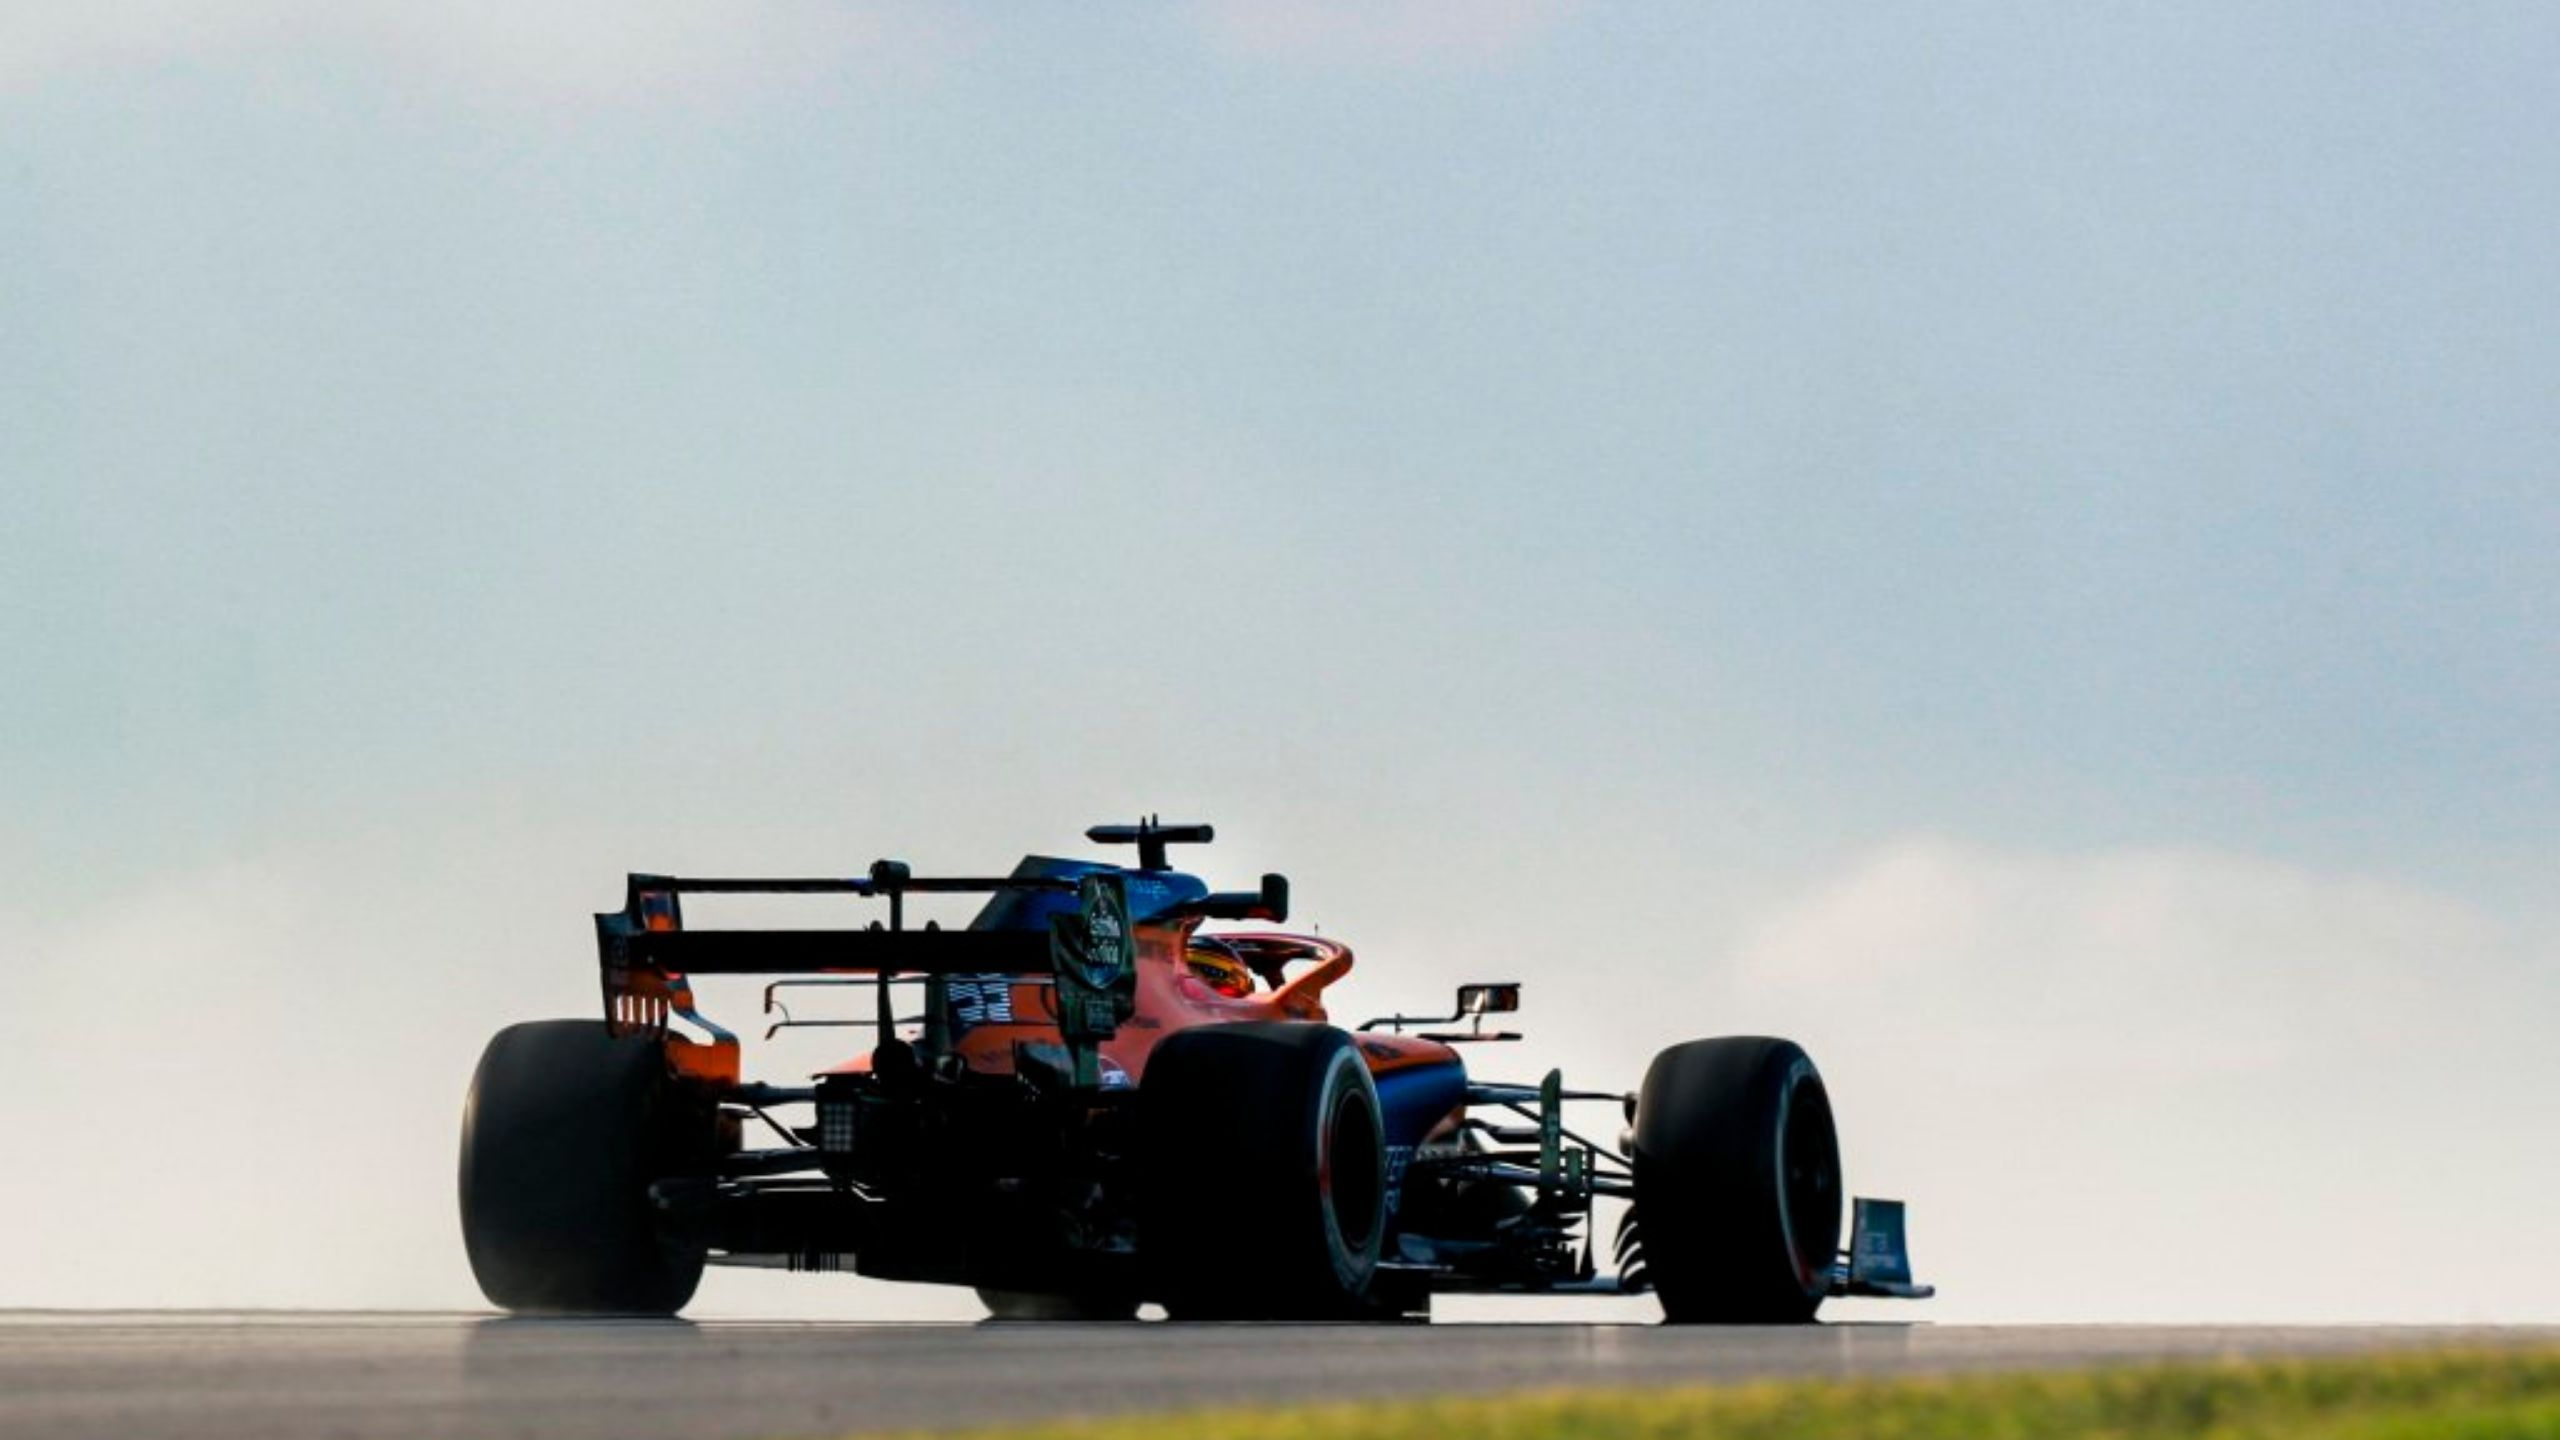 Can McLaren beat Racing Point, Ferrari and Renault to finish third in the F1 2020 Constructors' Championship?